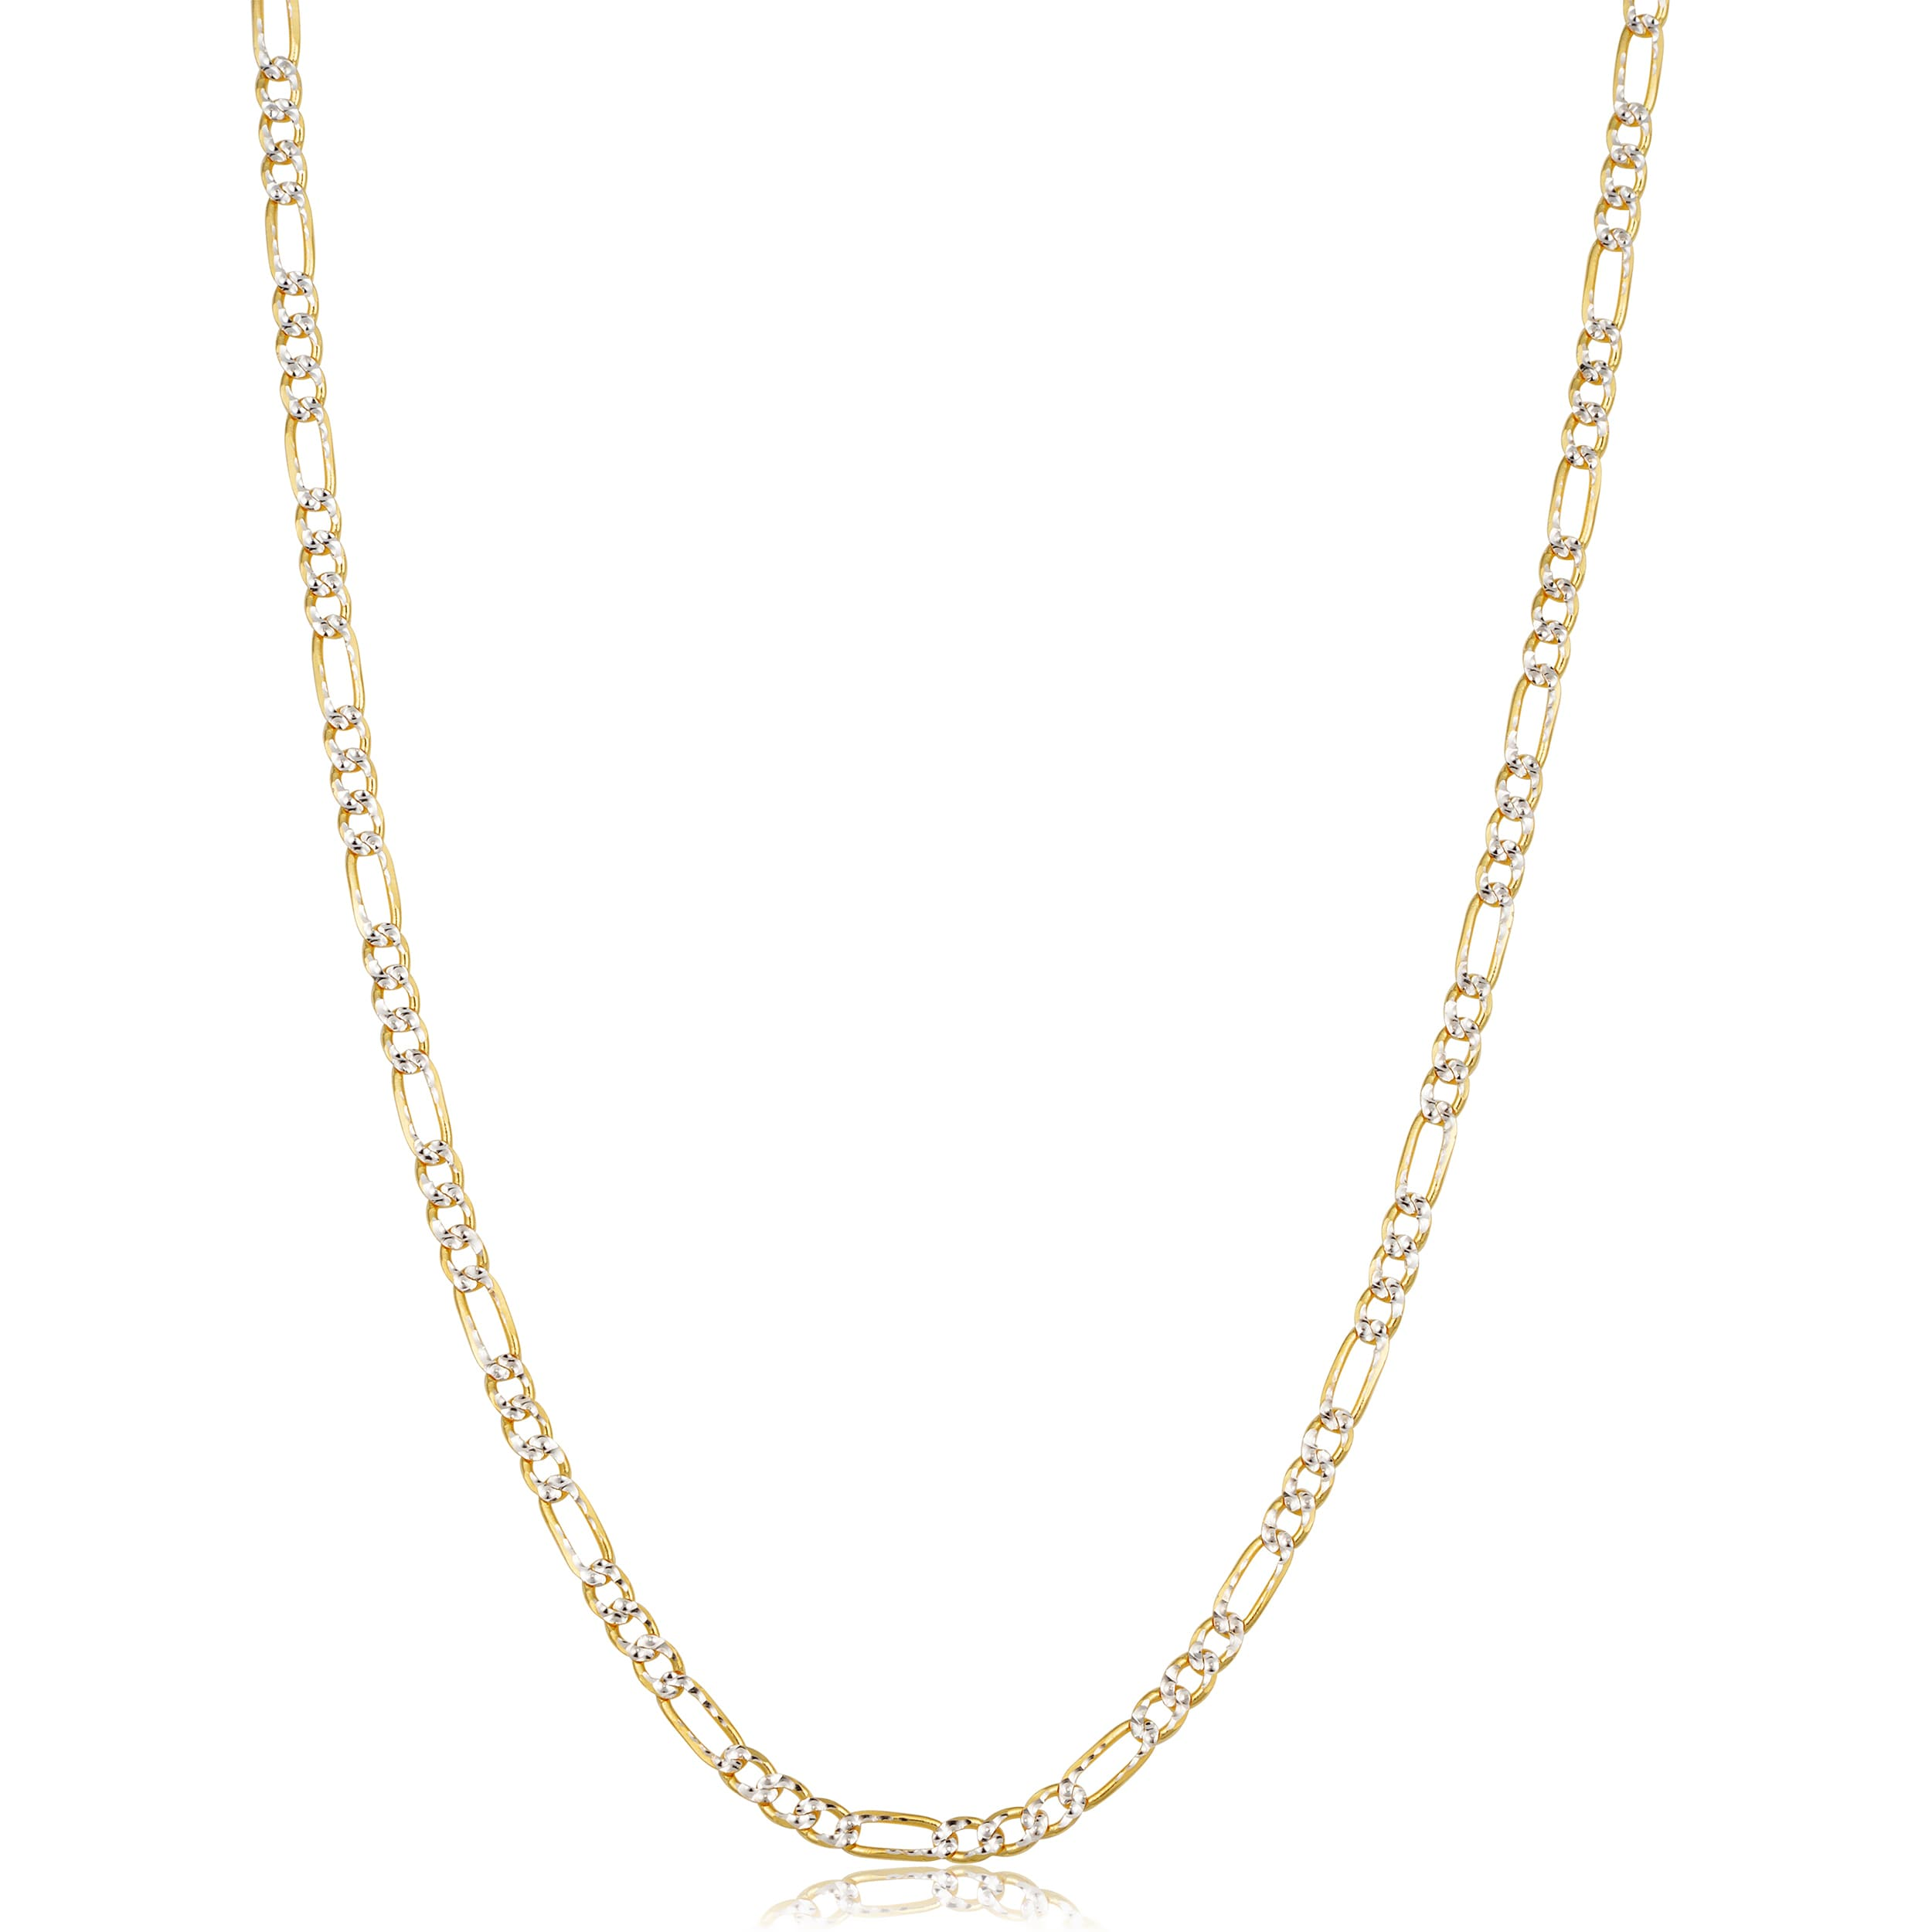 4cd672cd7d23f Buy Two-Tone Gold Chains & Necklaces Online at Overstock | Our Best ...